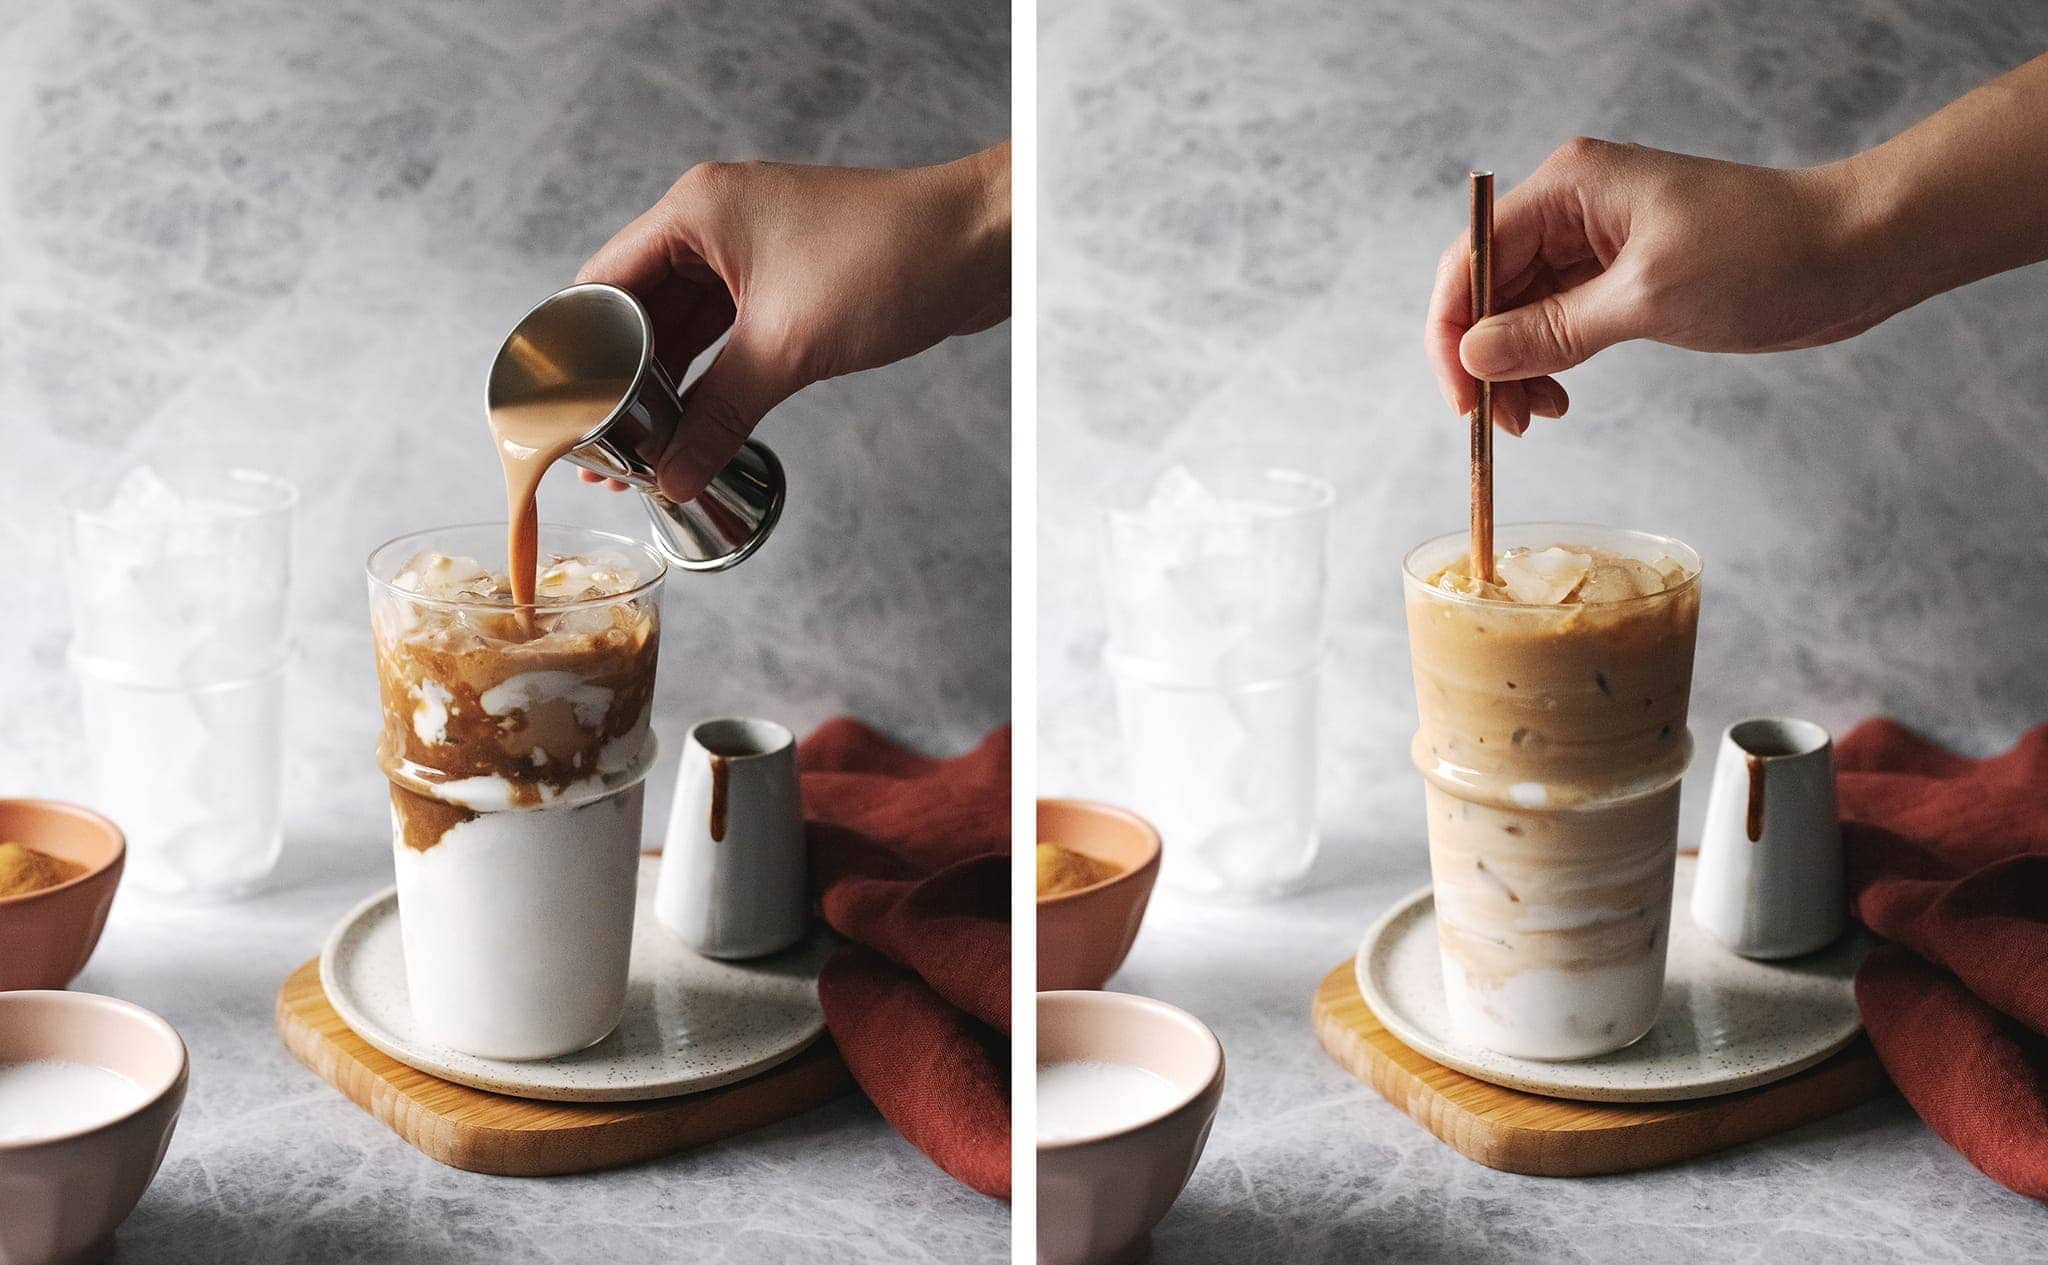 Pouring Amarula into coconut latte and stirring with straw